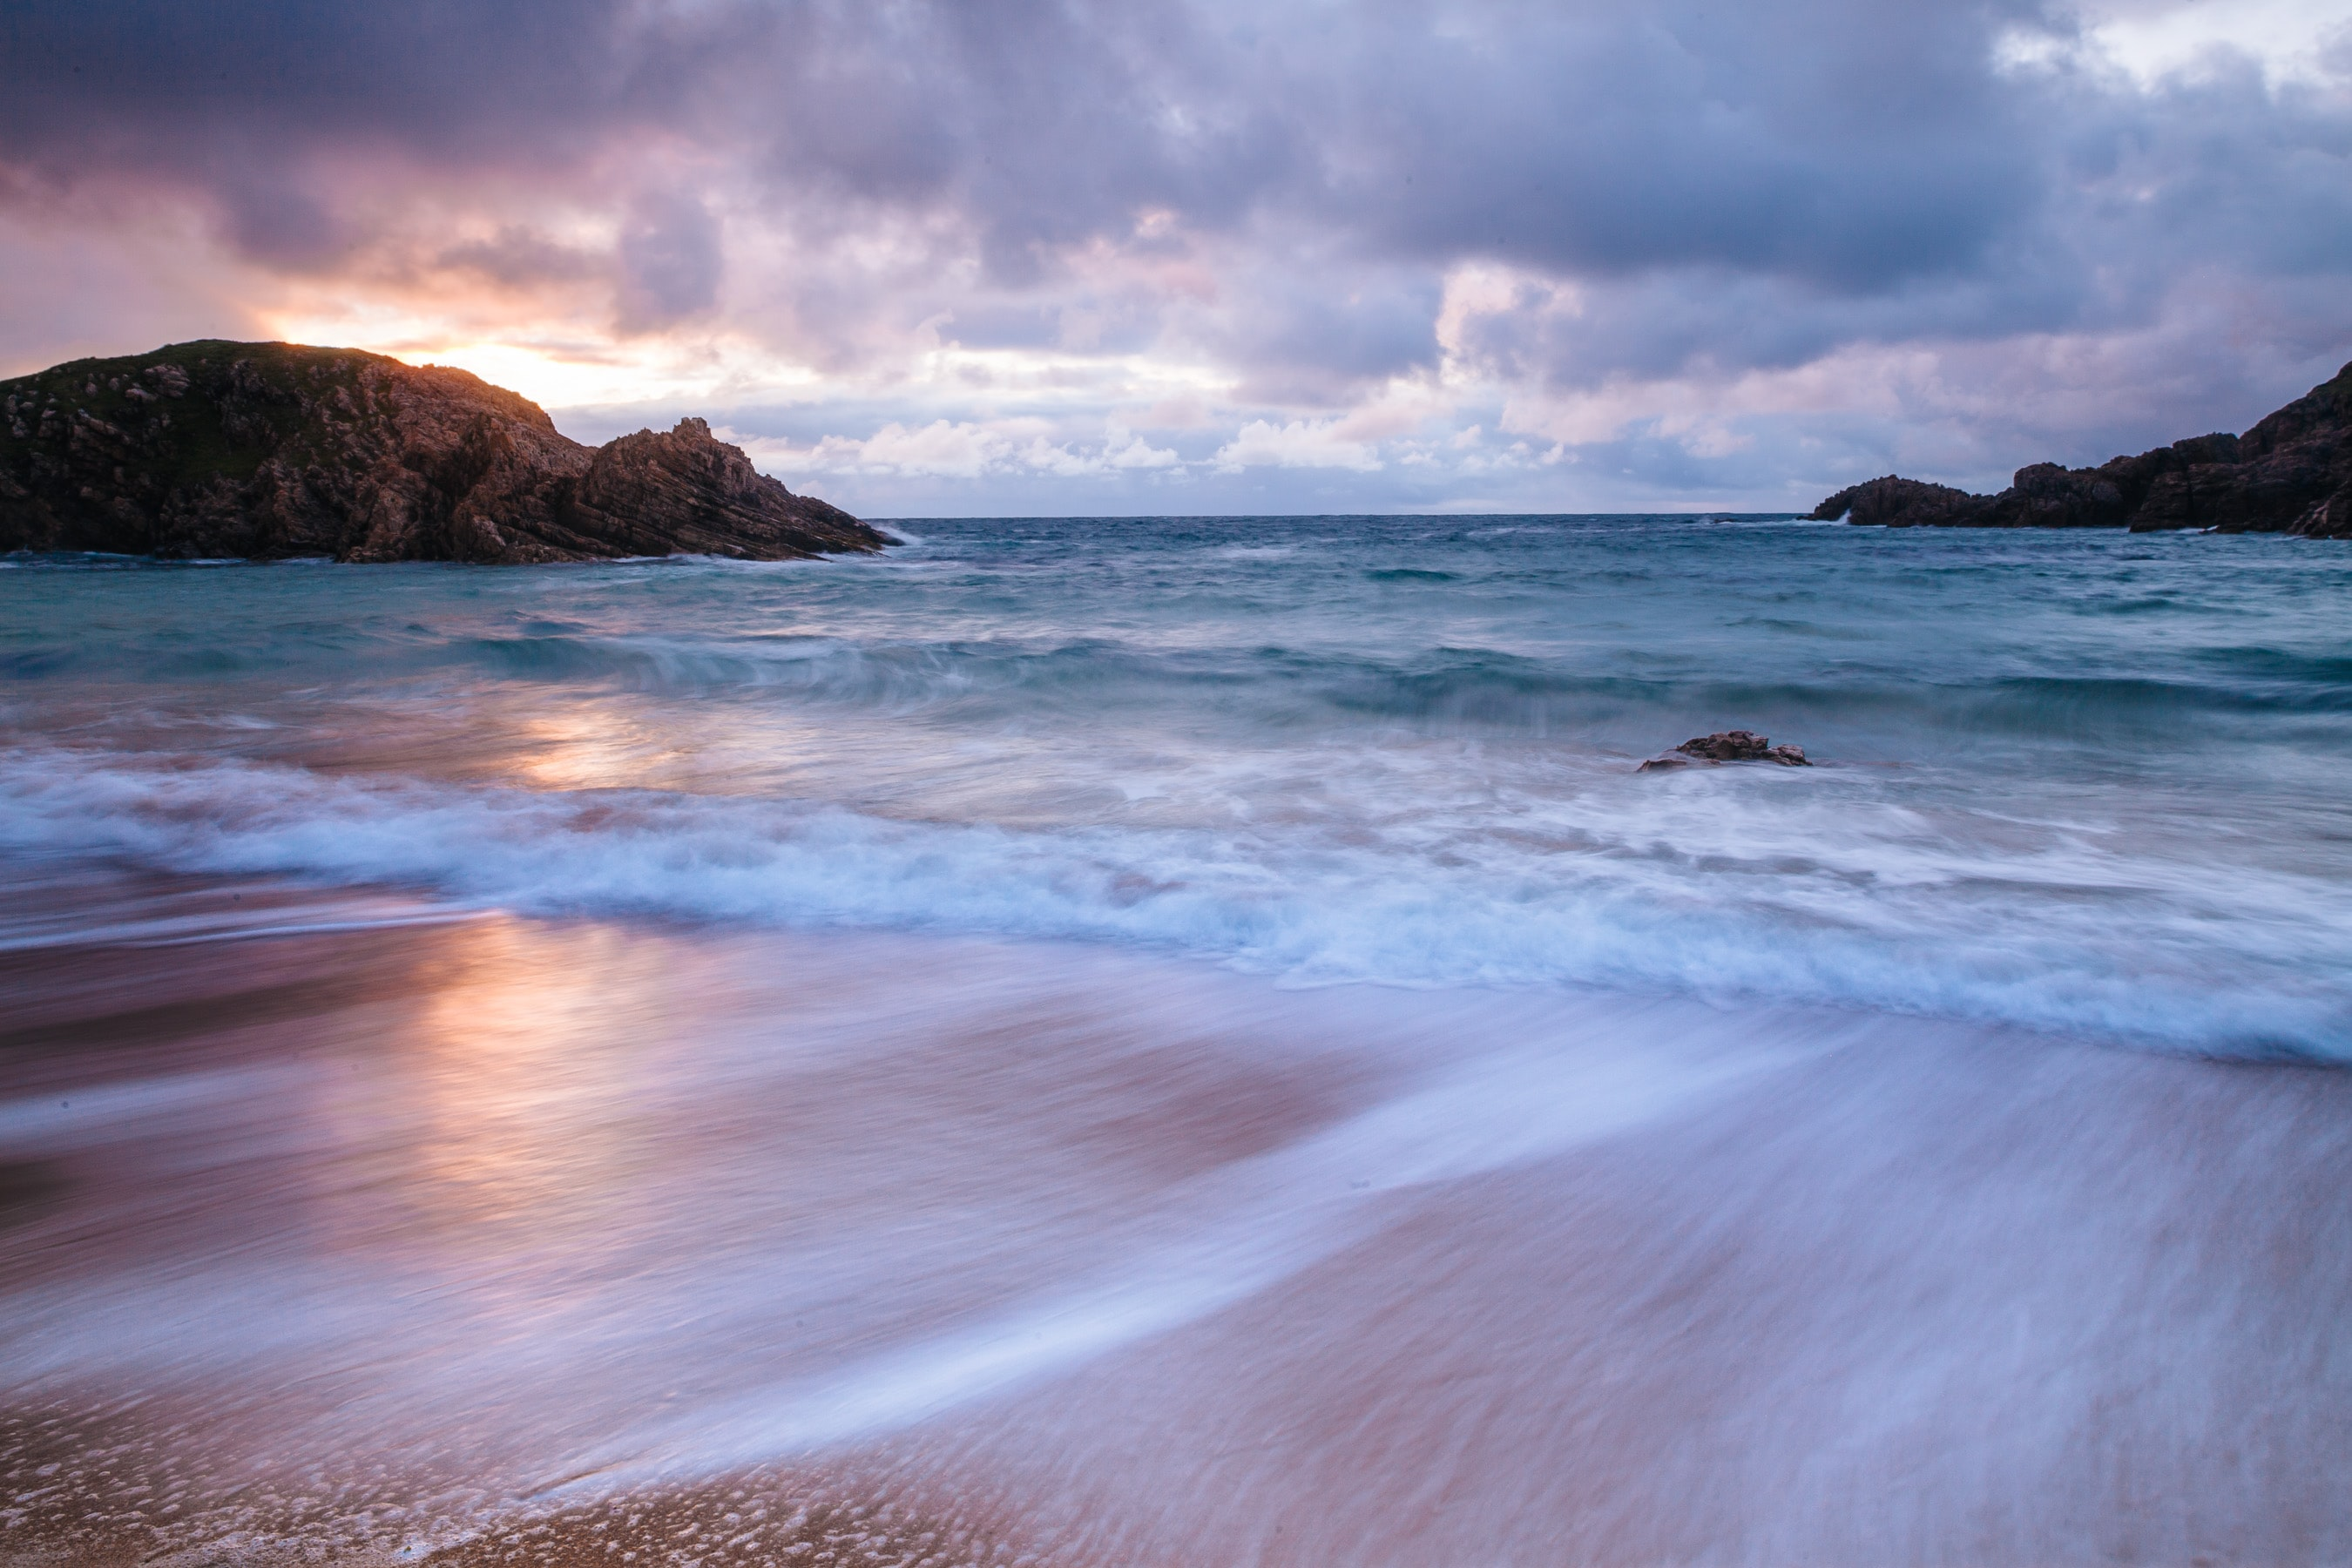 Ocean waves recede on a cloudy day in County Donegal, Ireland during sunset